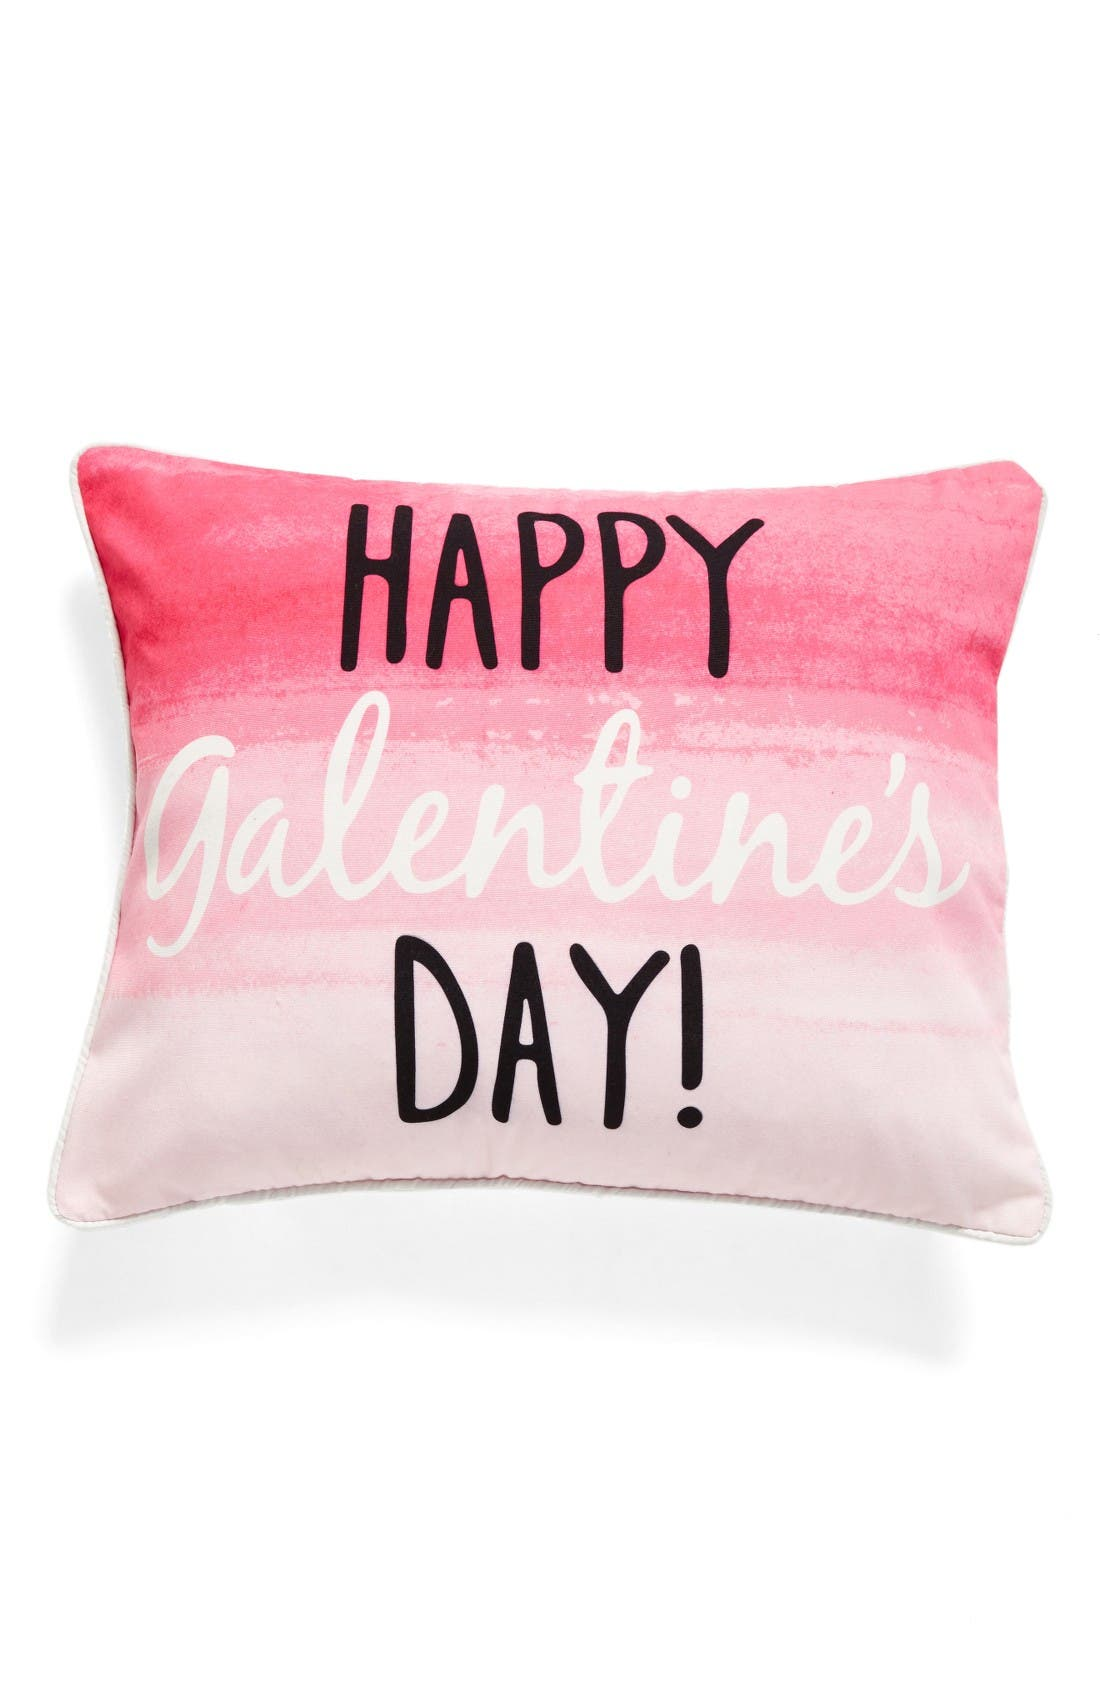 Happy Galentine's Day Pillow,                         Main,                         color, Pink